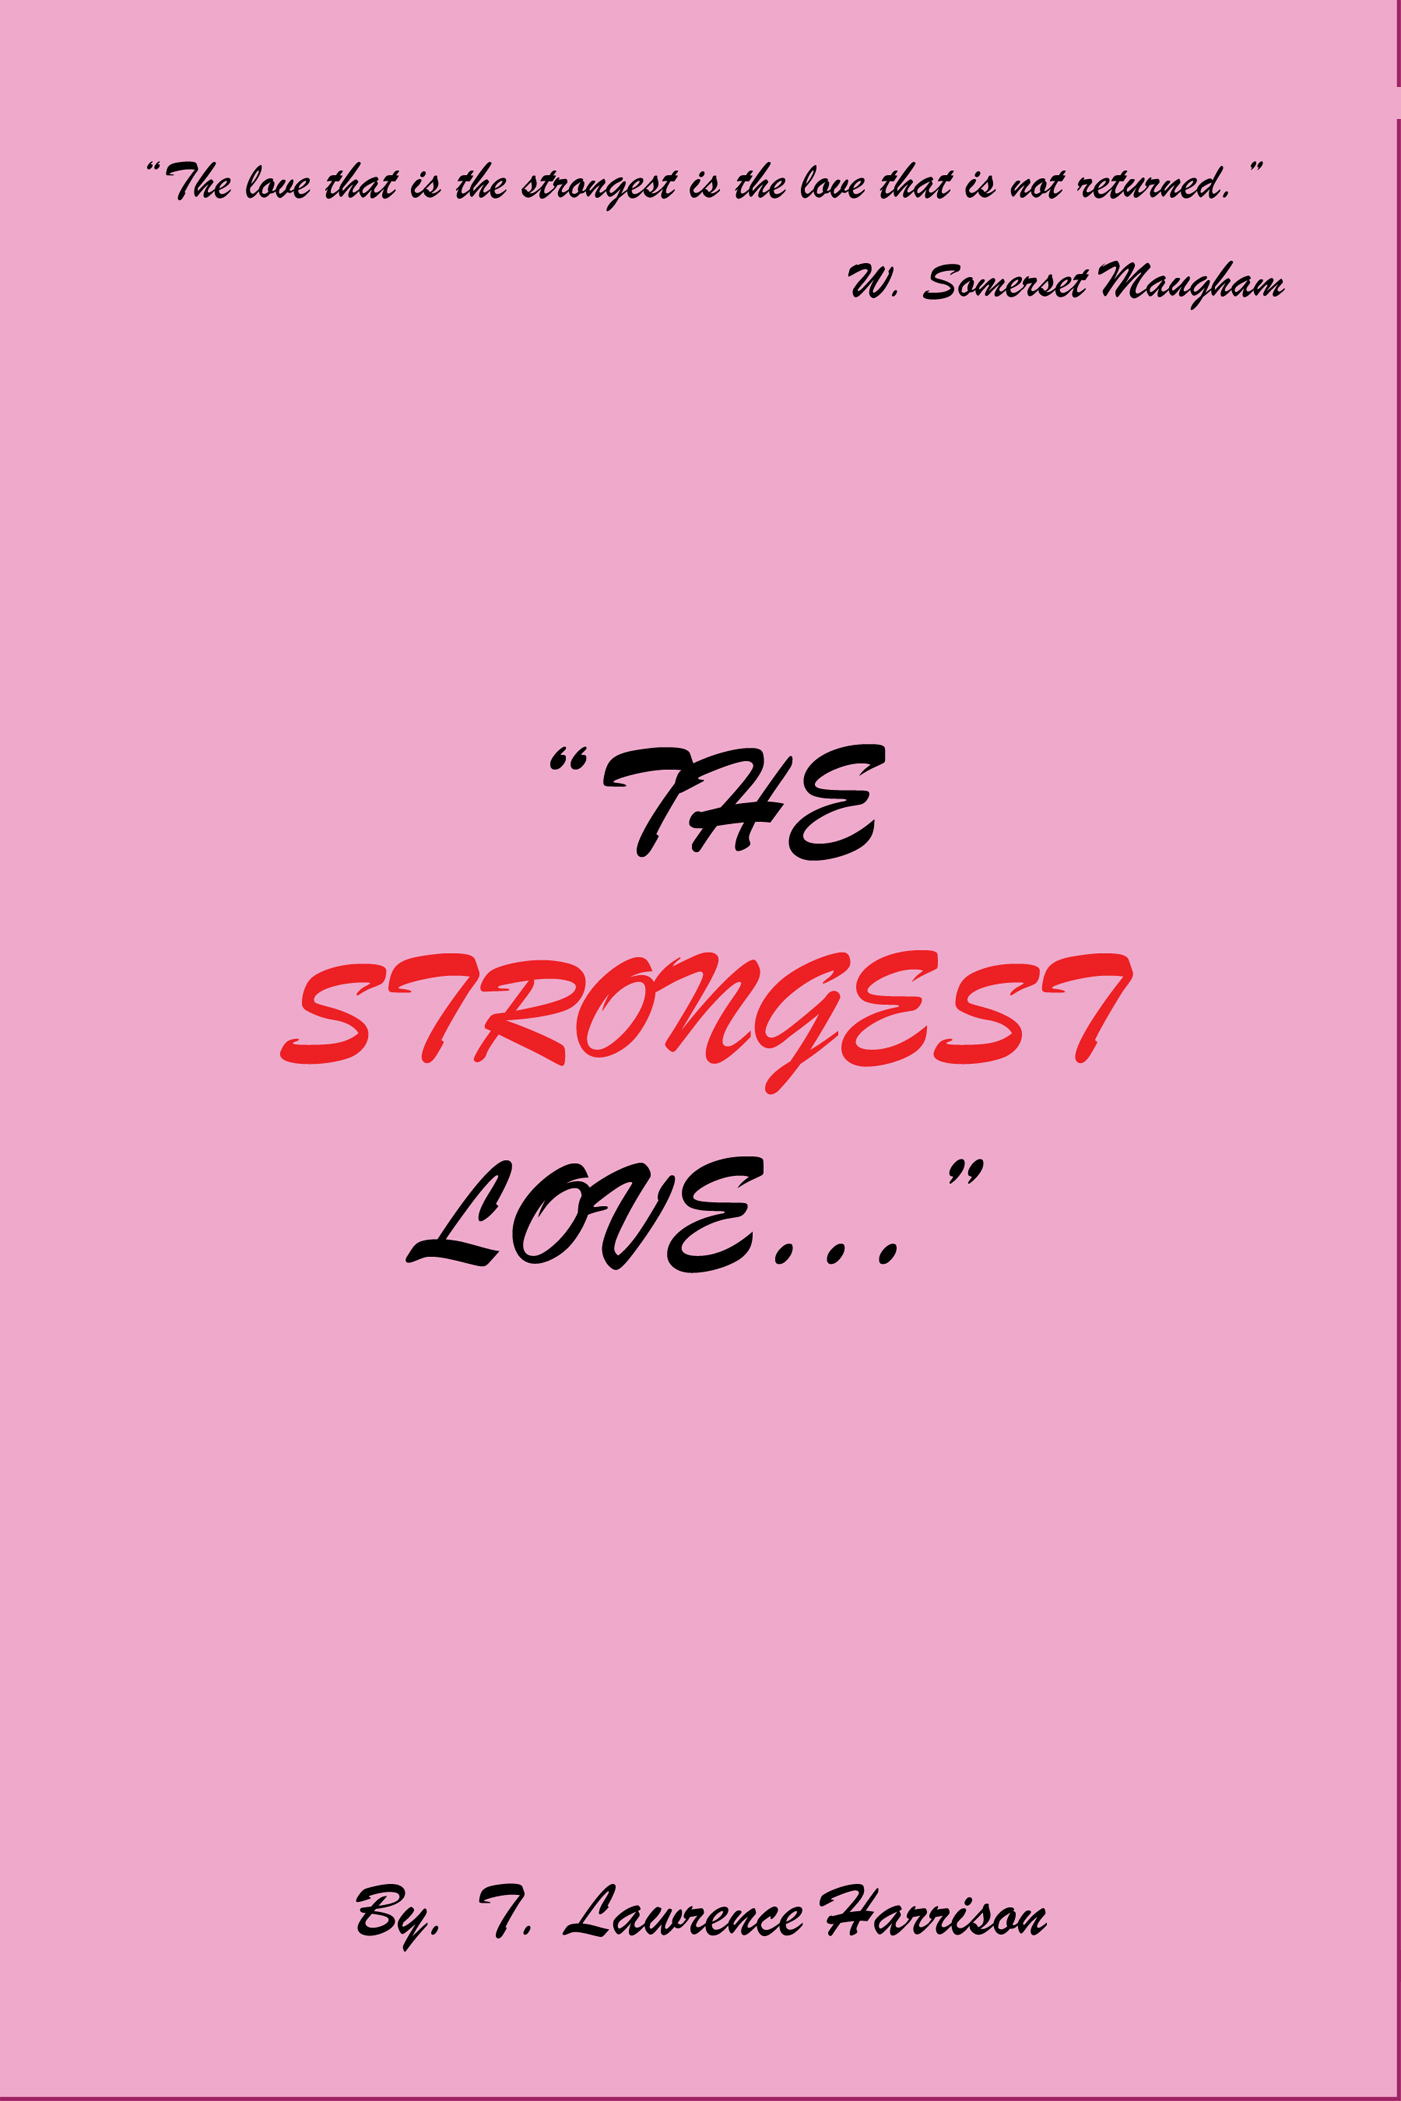 The Strongest Love... T. Lawrence Harrison